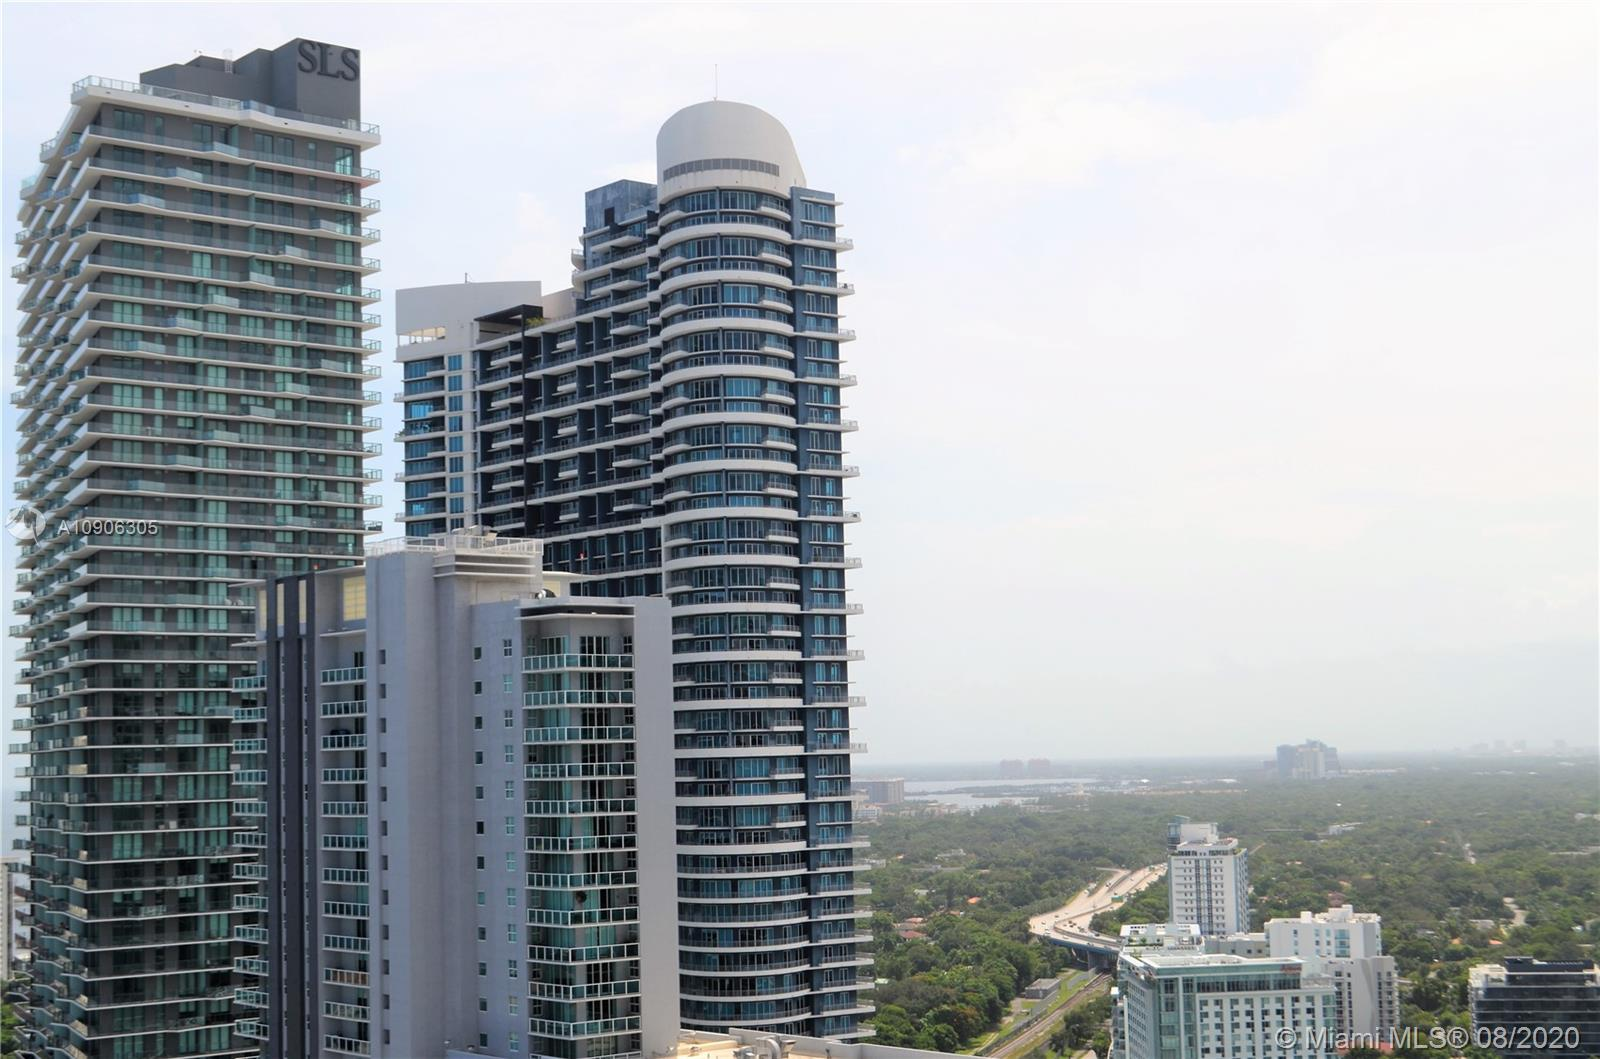 Unbelievable loft unit in the center of Miami's Financial District of Brickell Ave. This unit features a 1 bedroom 1.5 baths, laminate wood floors throughout, stainless steel appliances, washer and dryer, amazing City Views. Water, cable and pest control included. Amenities: pool, fitness center, virtual golf room, cigar and wine room, restaurants on premises and much more!!. Walk to Mary Brickell Village, Brickell City Centre and all major points of interest. Convenient access to I95. This is a must see!!